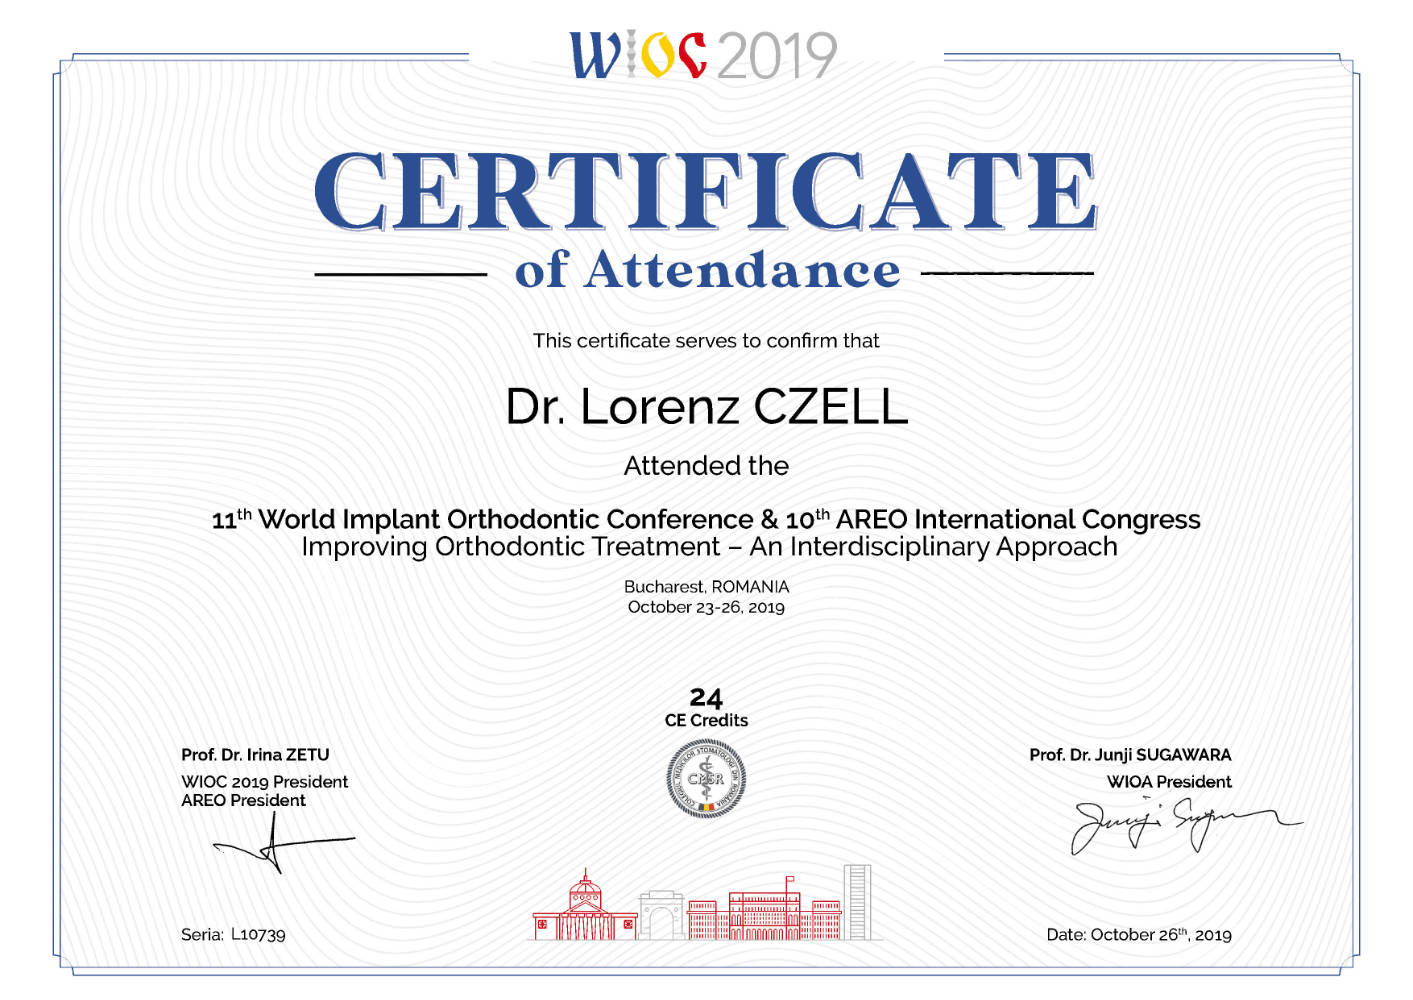 2019 10 23 26 WIOC World Implant Orthodontic Conference